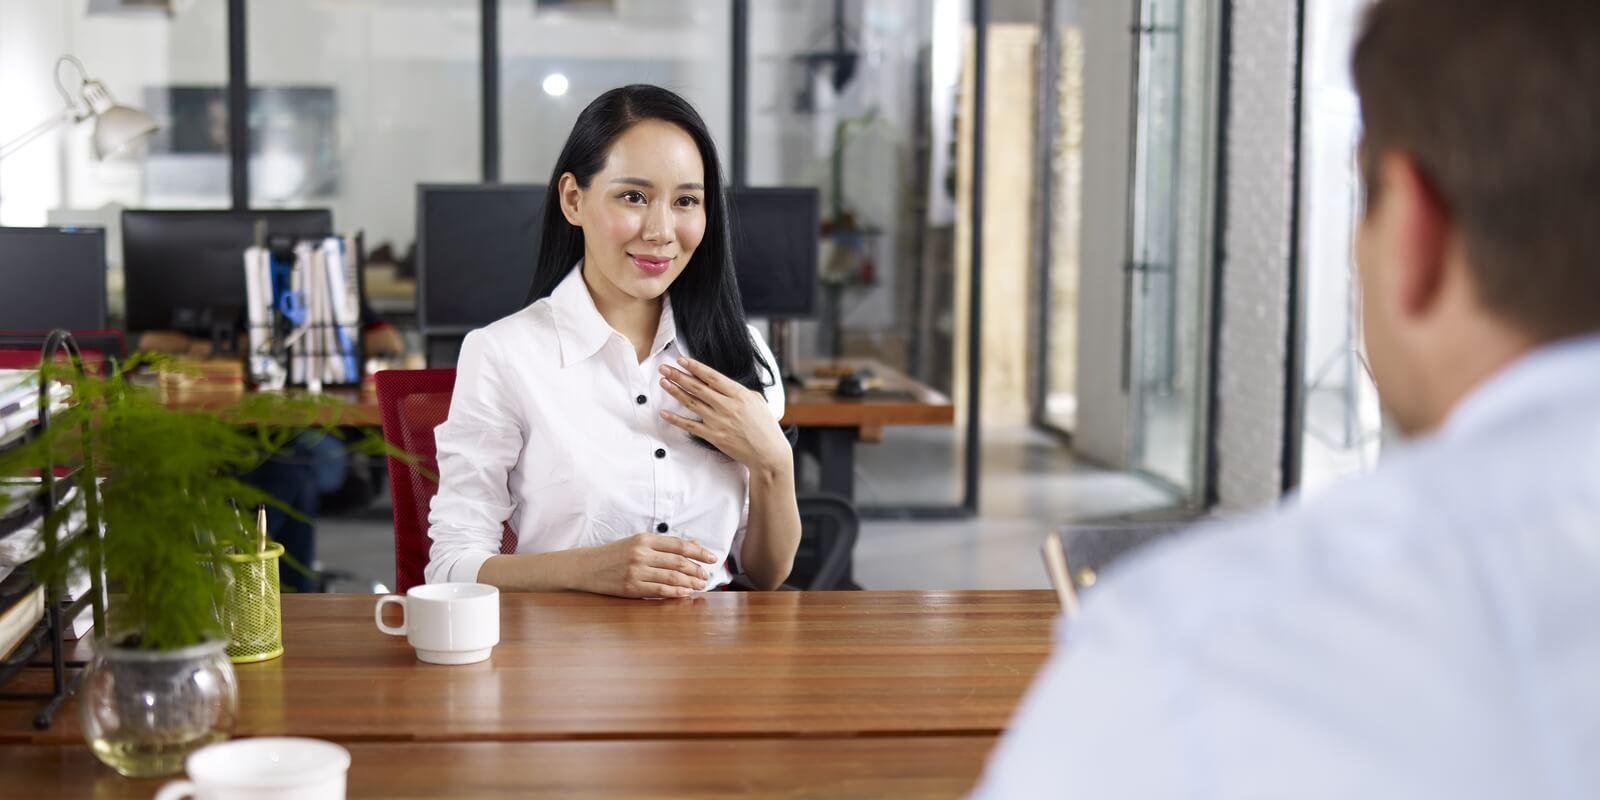 12 best interview questions